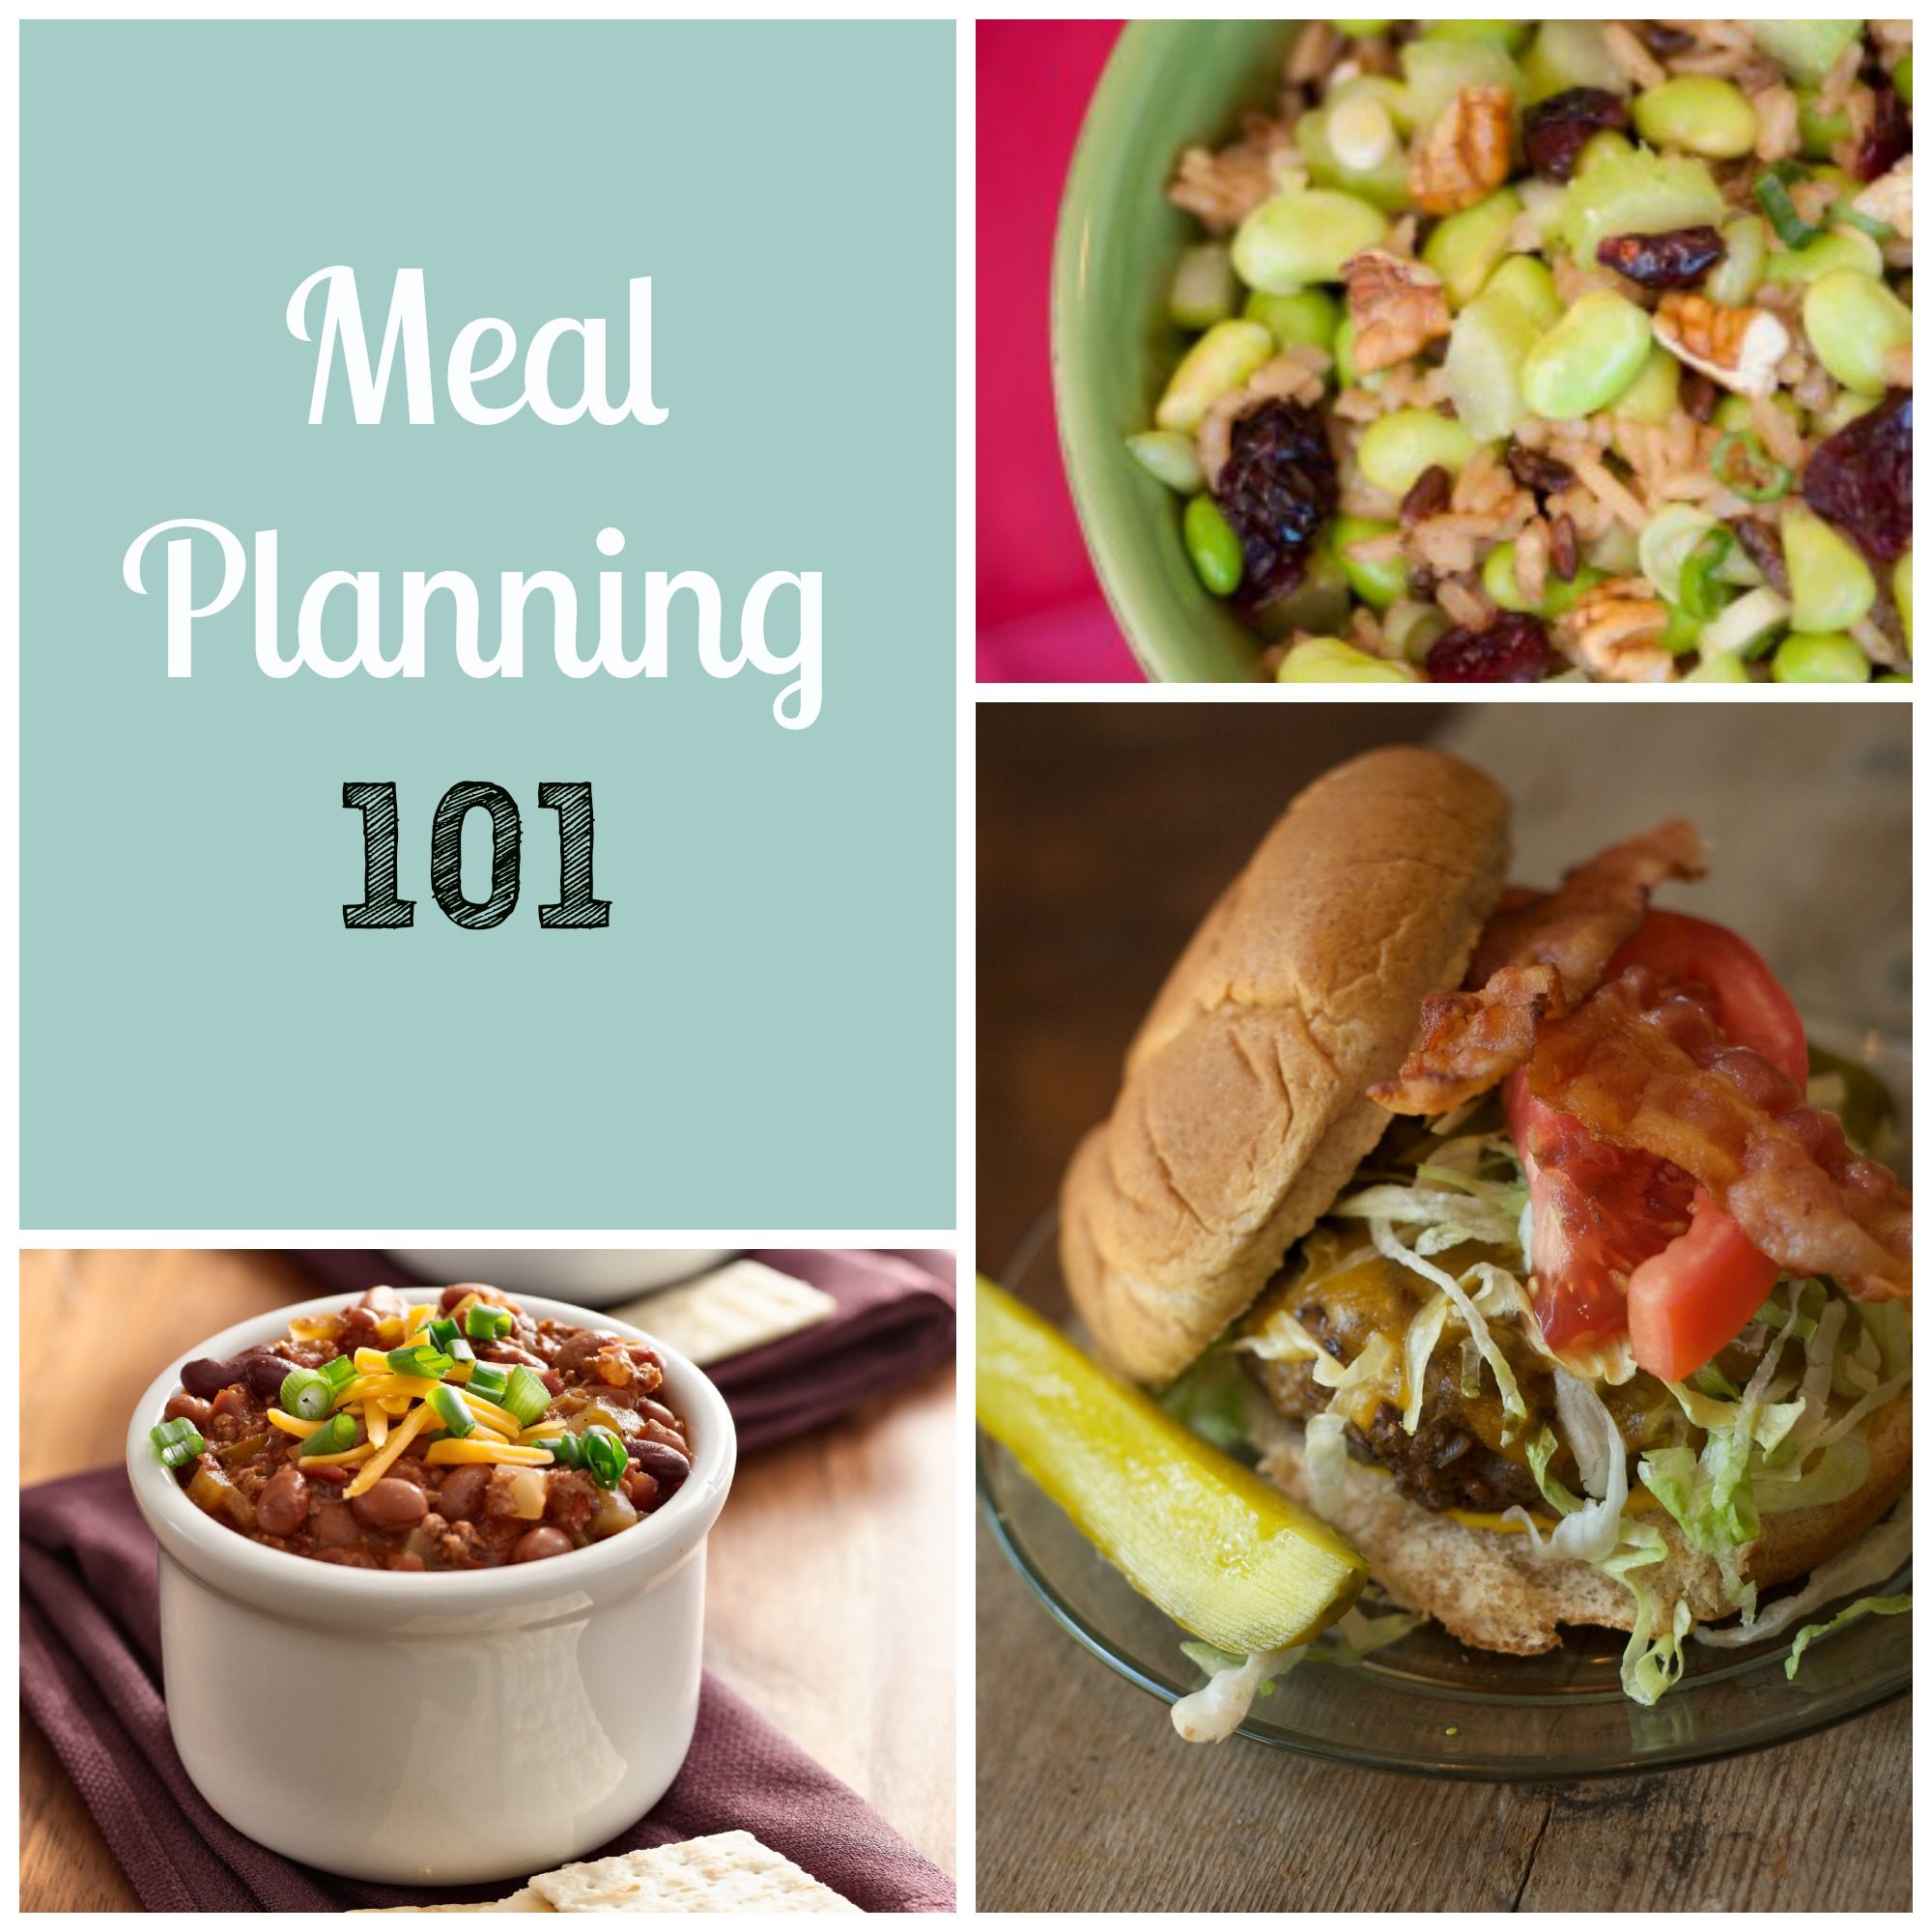 Meal Planning 101 and how to save money without coupons from My Life Well Loved